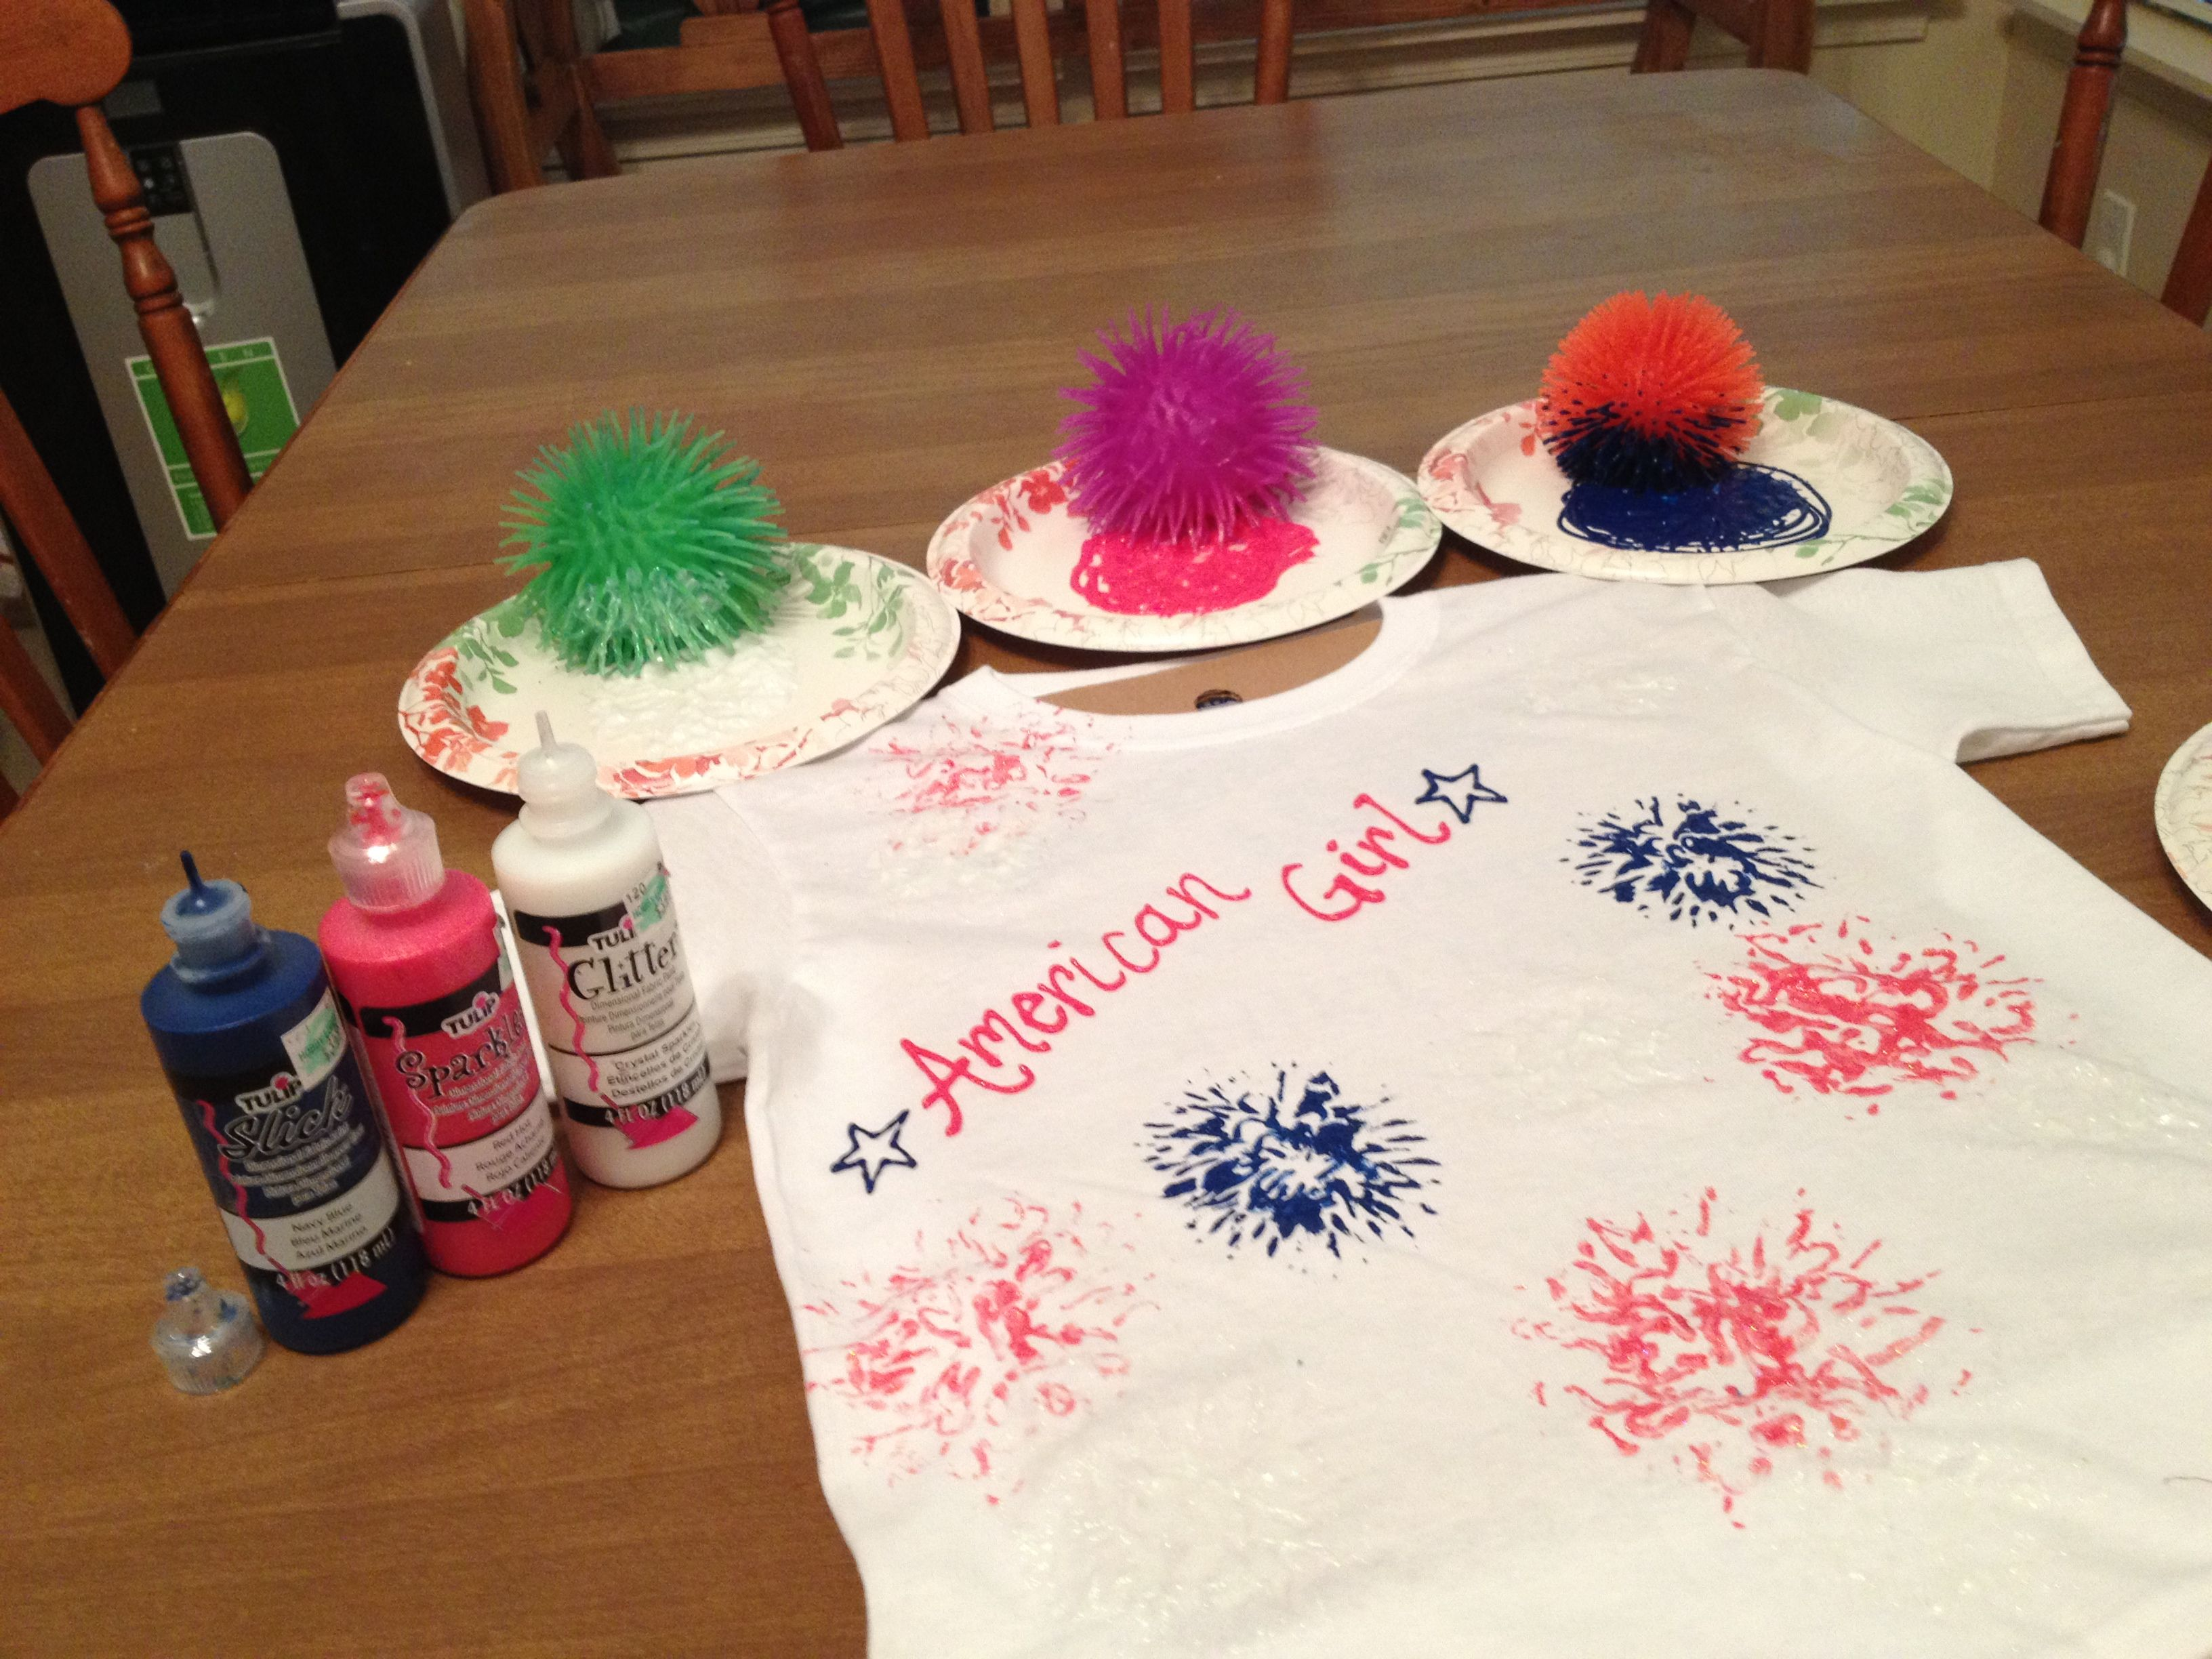 Puffy paint designs - Just Use Puff Paint And Those Squishy Spiky Balls From The Dollar Store Just Stamp The Balls Into The Paint And Stamp Onto The Shirt